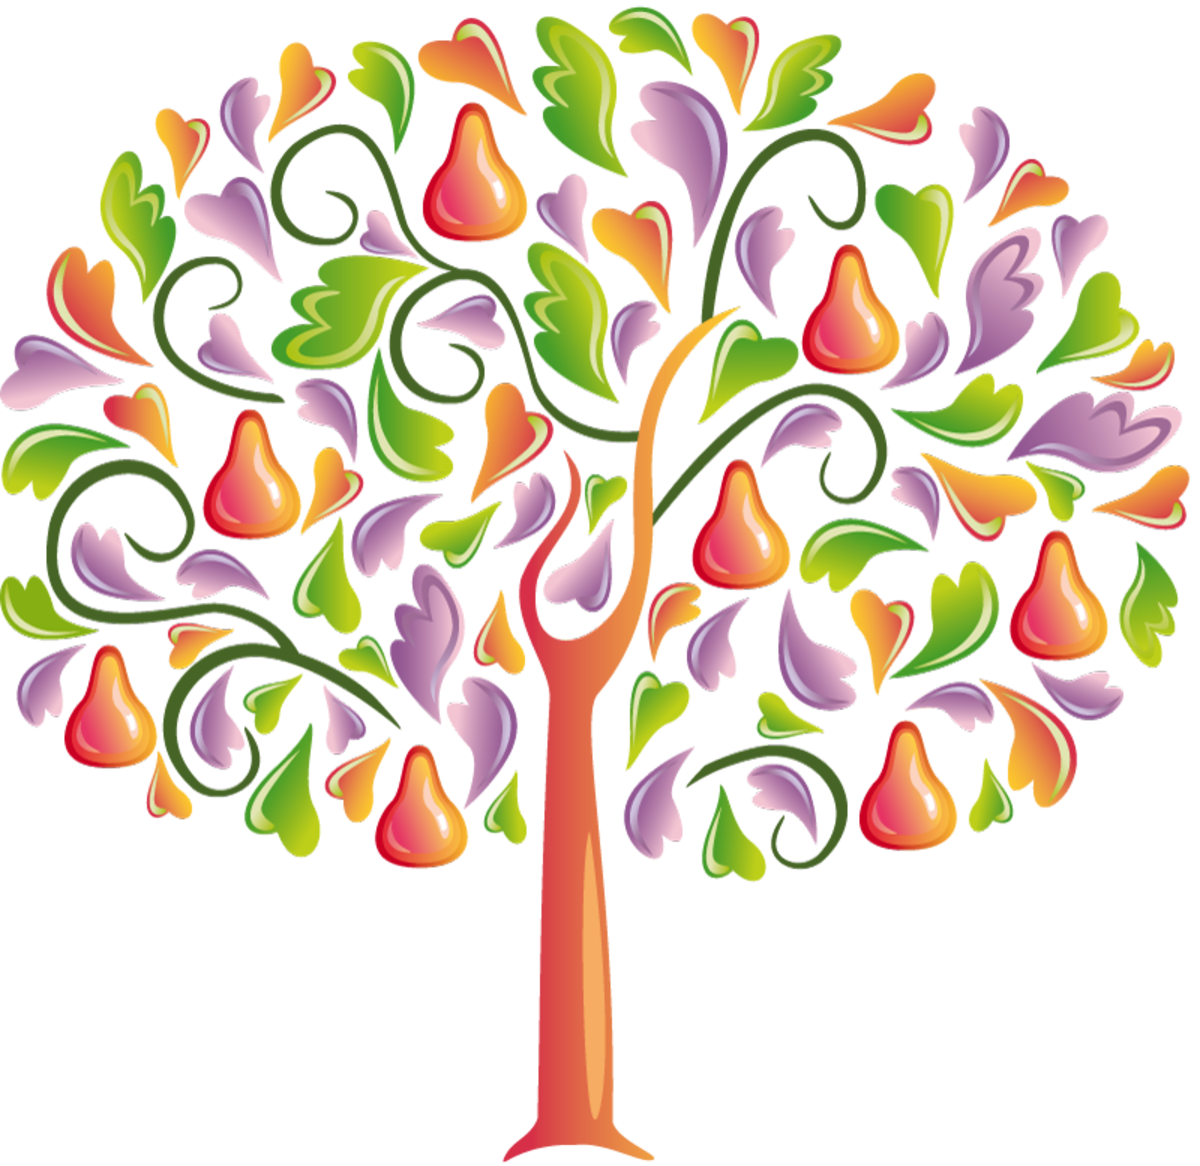 Colored Leaves on a Pear Tree